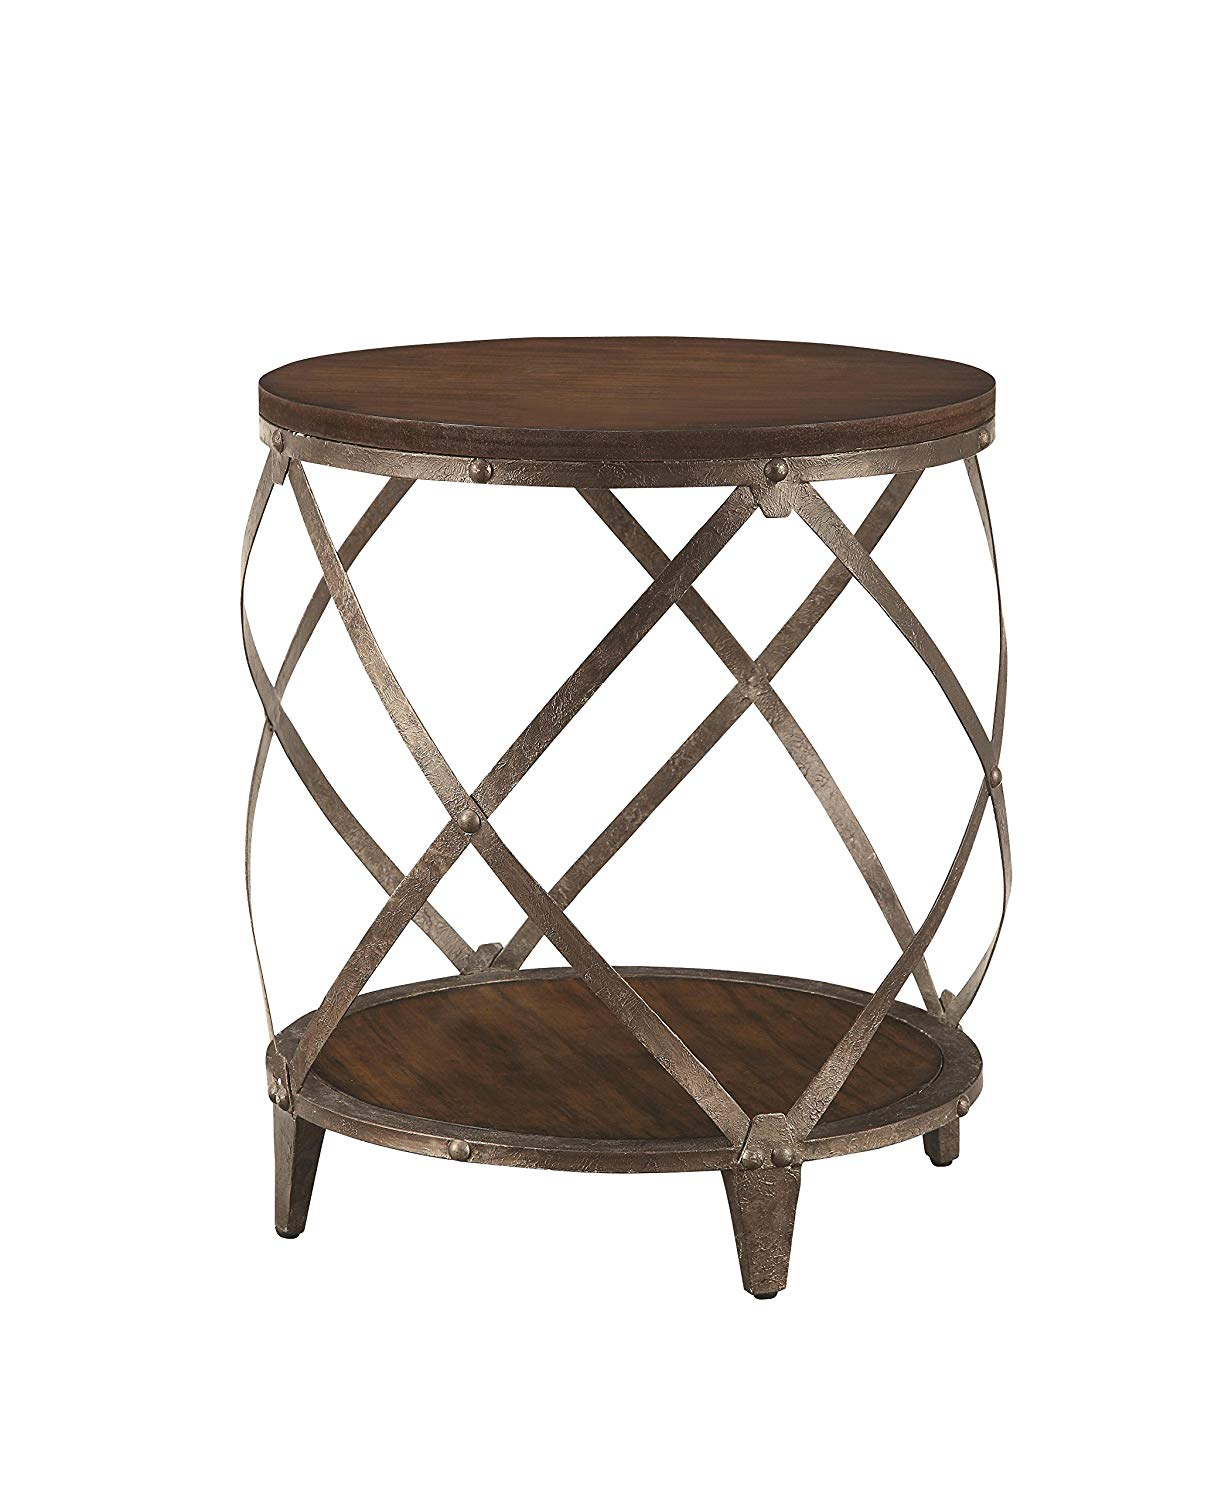 interior black round end table skinny side small accent white bedside metal full size glass replacement mosaic top coffee west elm dining room pub style kitchen tiny lantern lamp